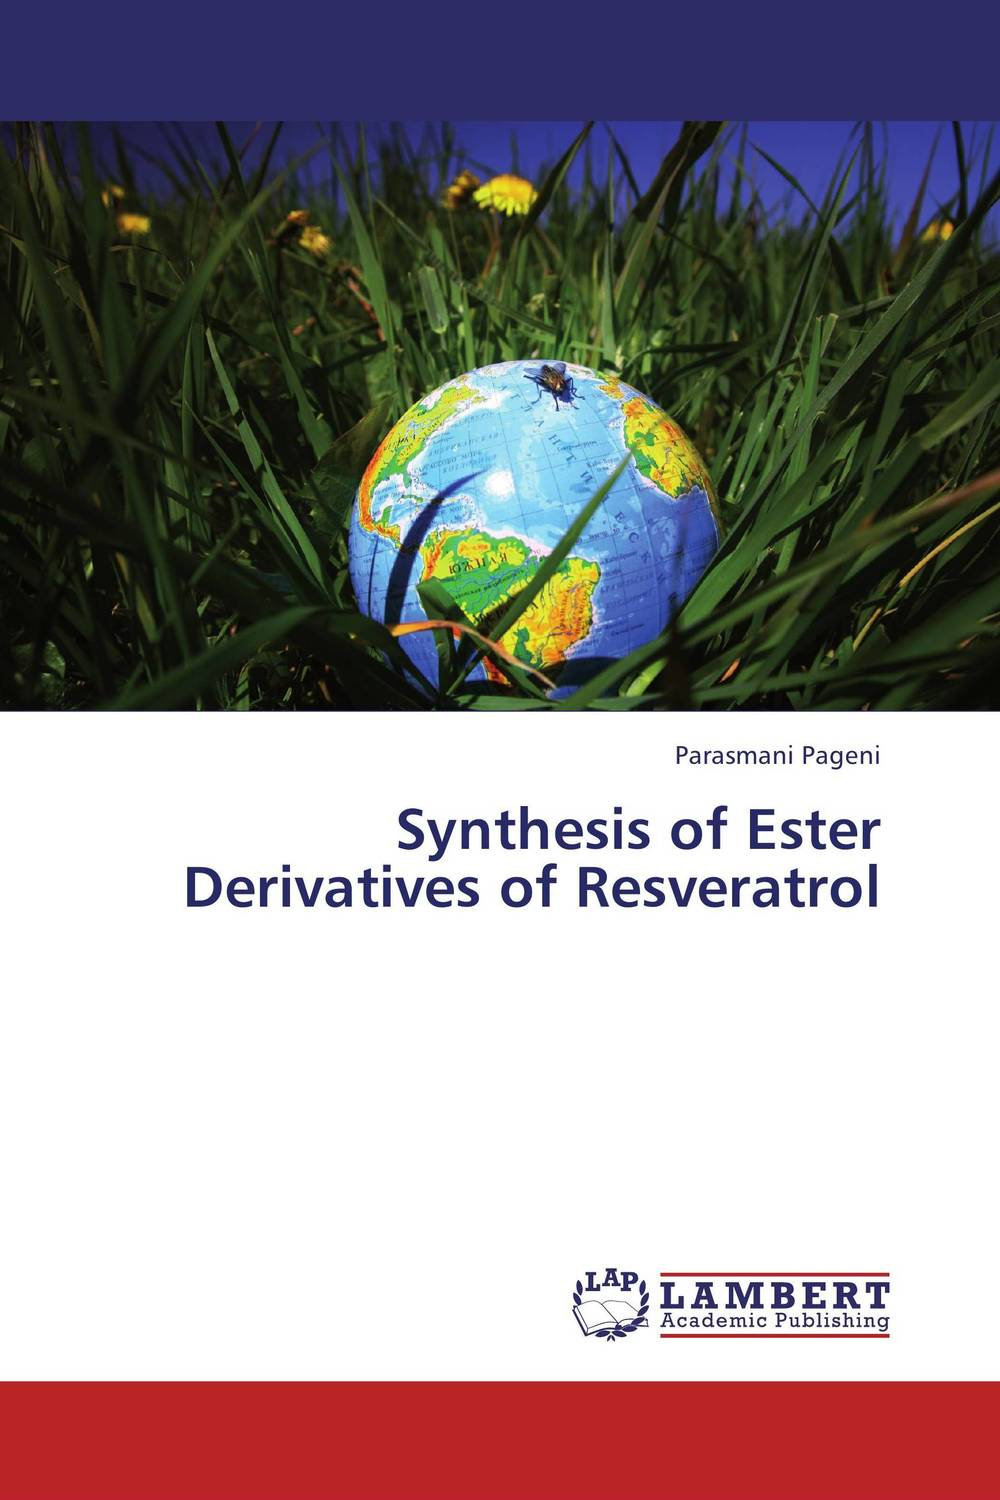 Synthesis of Ester Derivatives of Resveratrol found in brooklyn